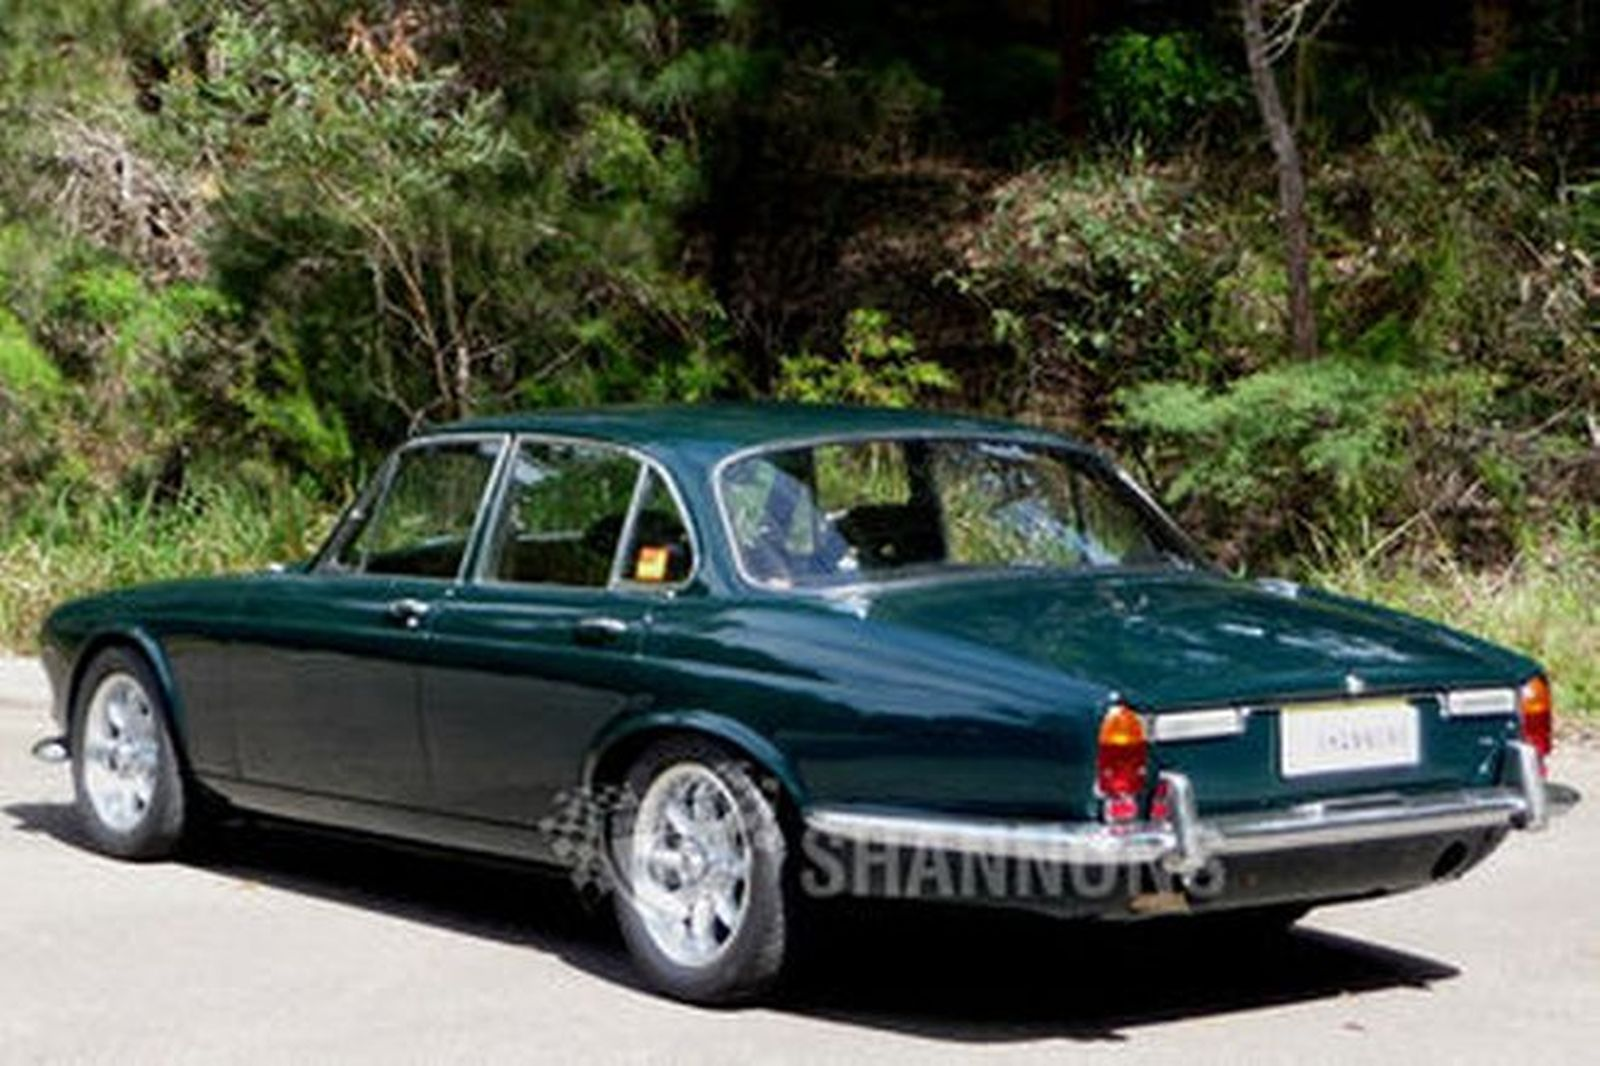 1969 Jaguar Xj6 Cast Wiring Diagrams 1973 Diagram Sold Series 1 Saloon Modified Auctions Lot 6 Shannons Rh Com Au Wagon